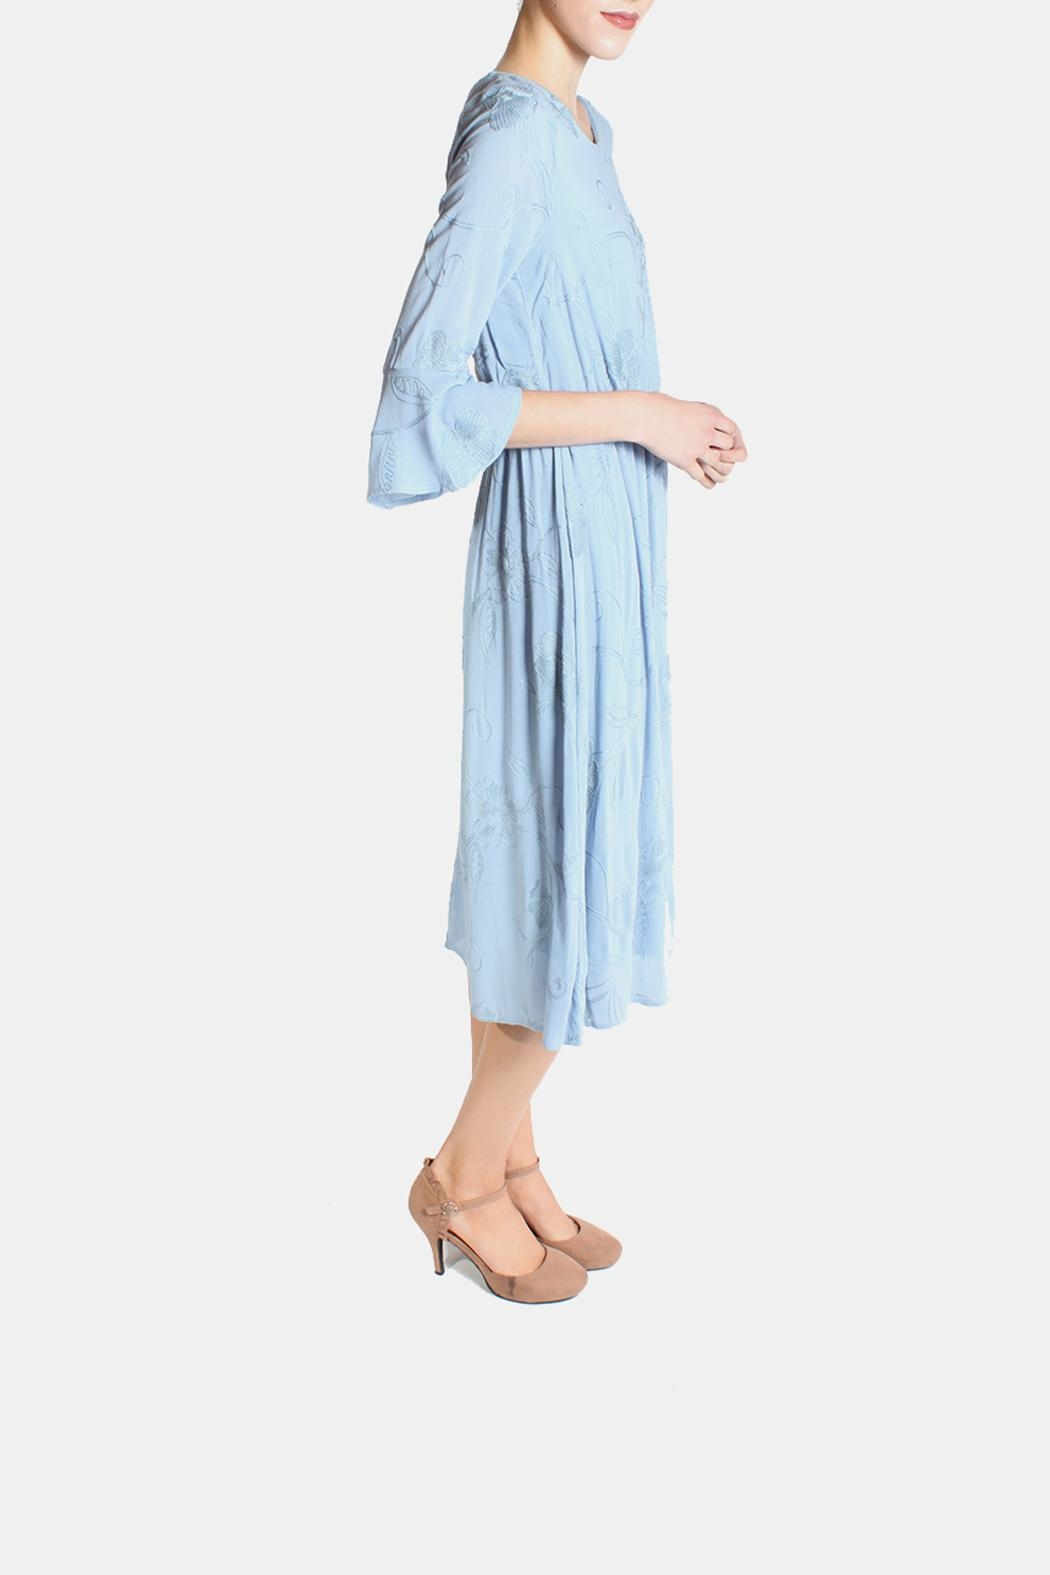 Le Lis Dreamy Blue Embroidered Dress - Front Full Image